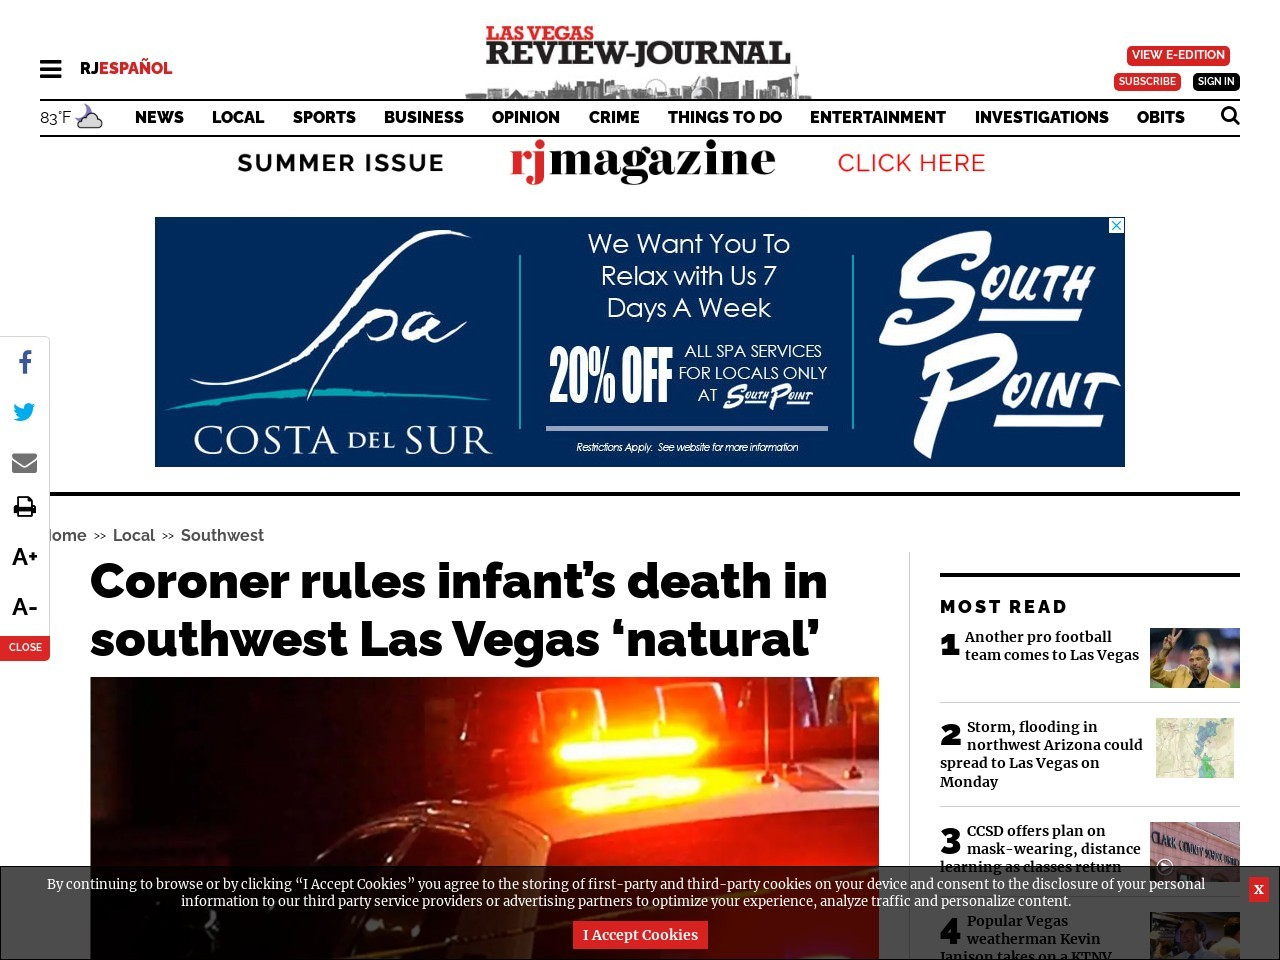 Coroner rules infant's death in southwest Las Vegas 'natural'